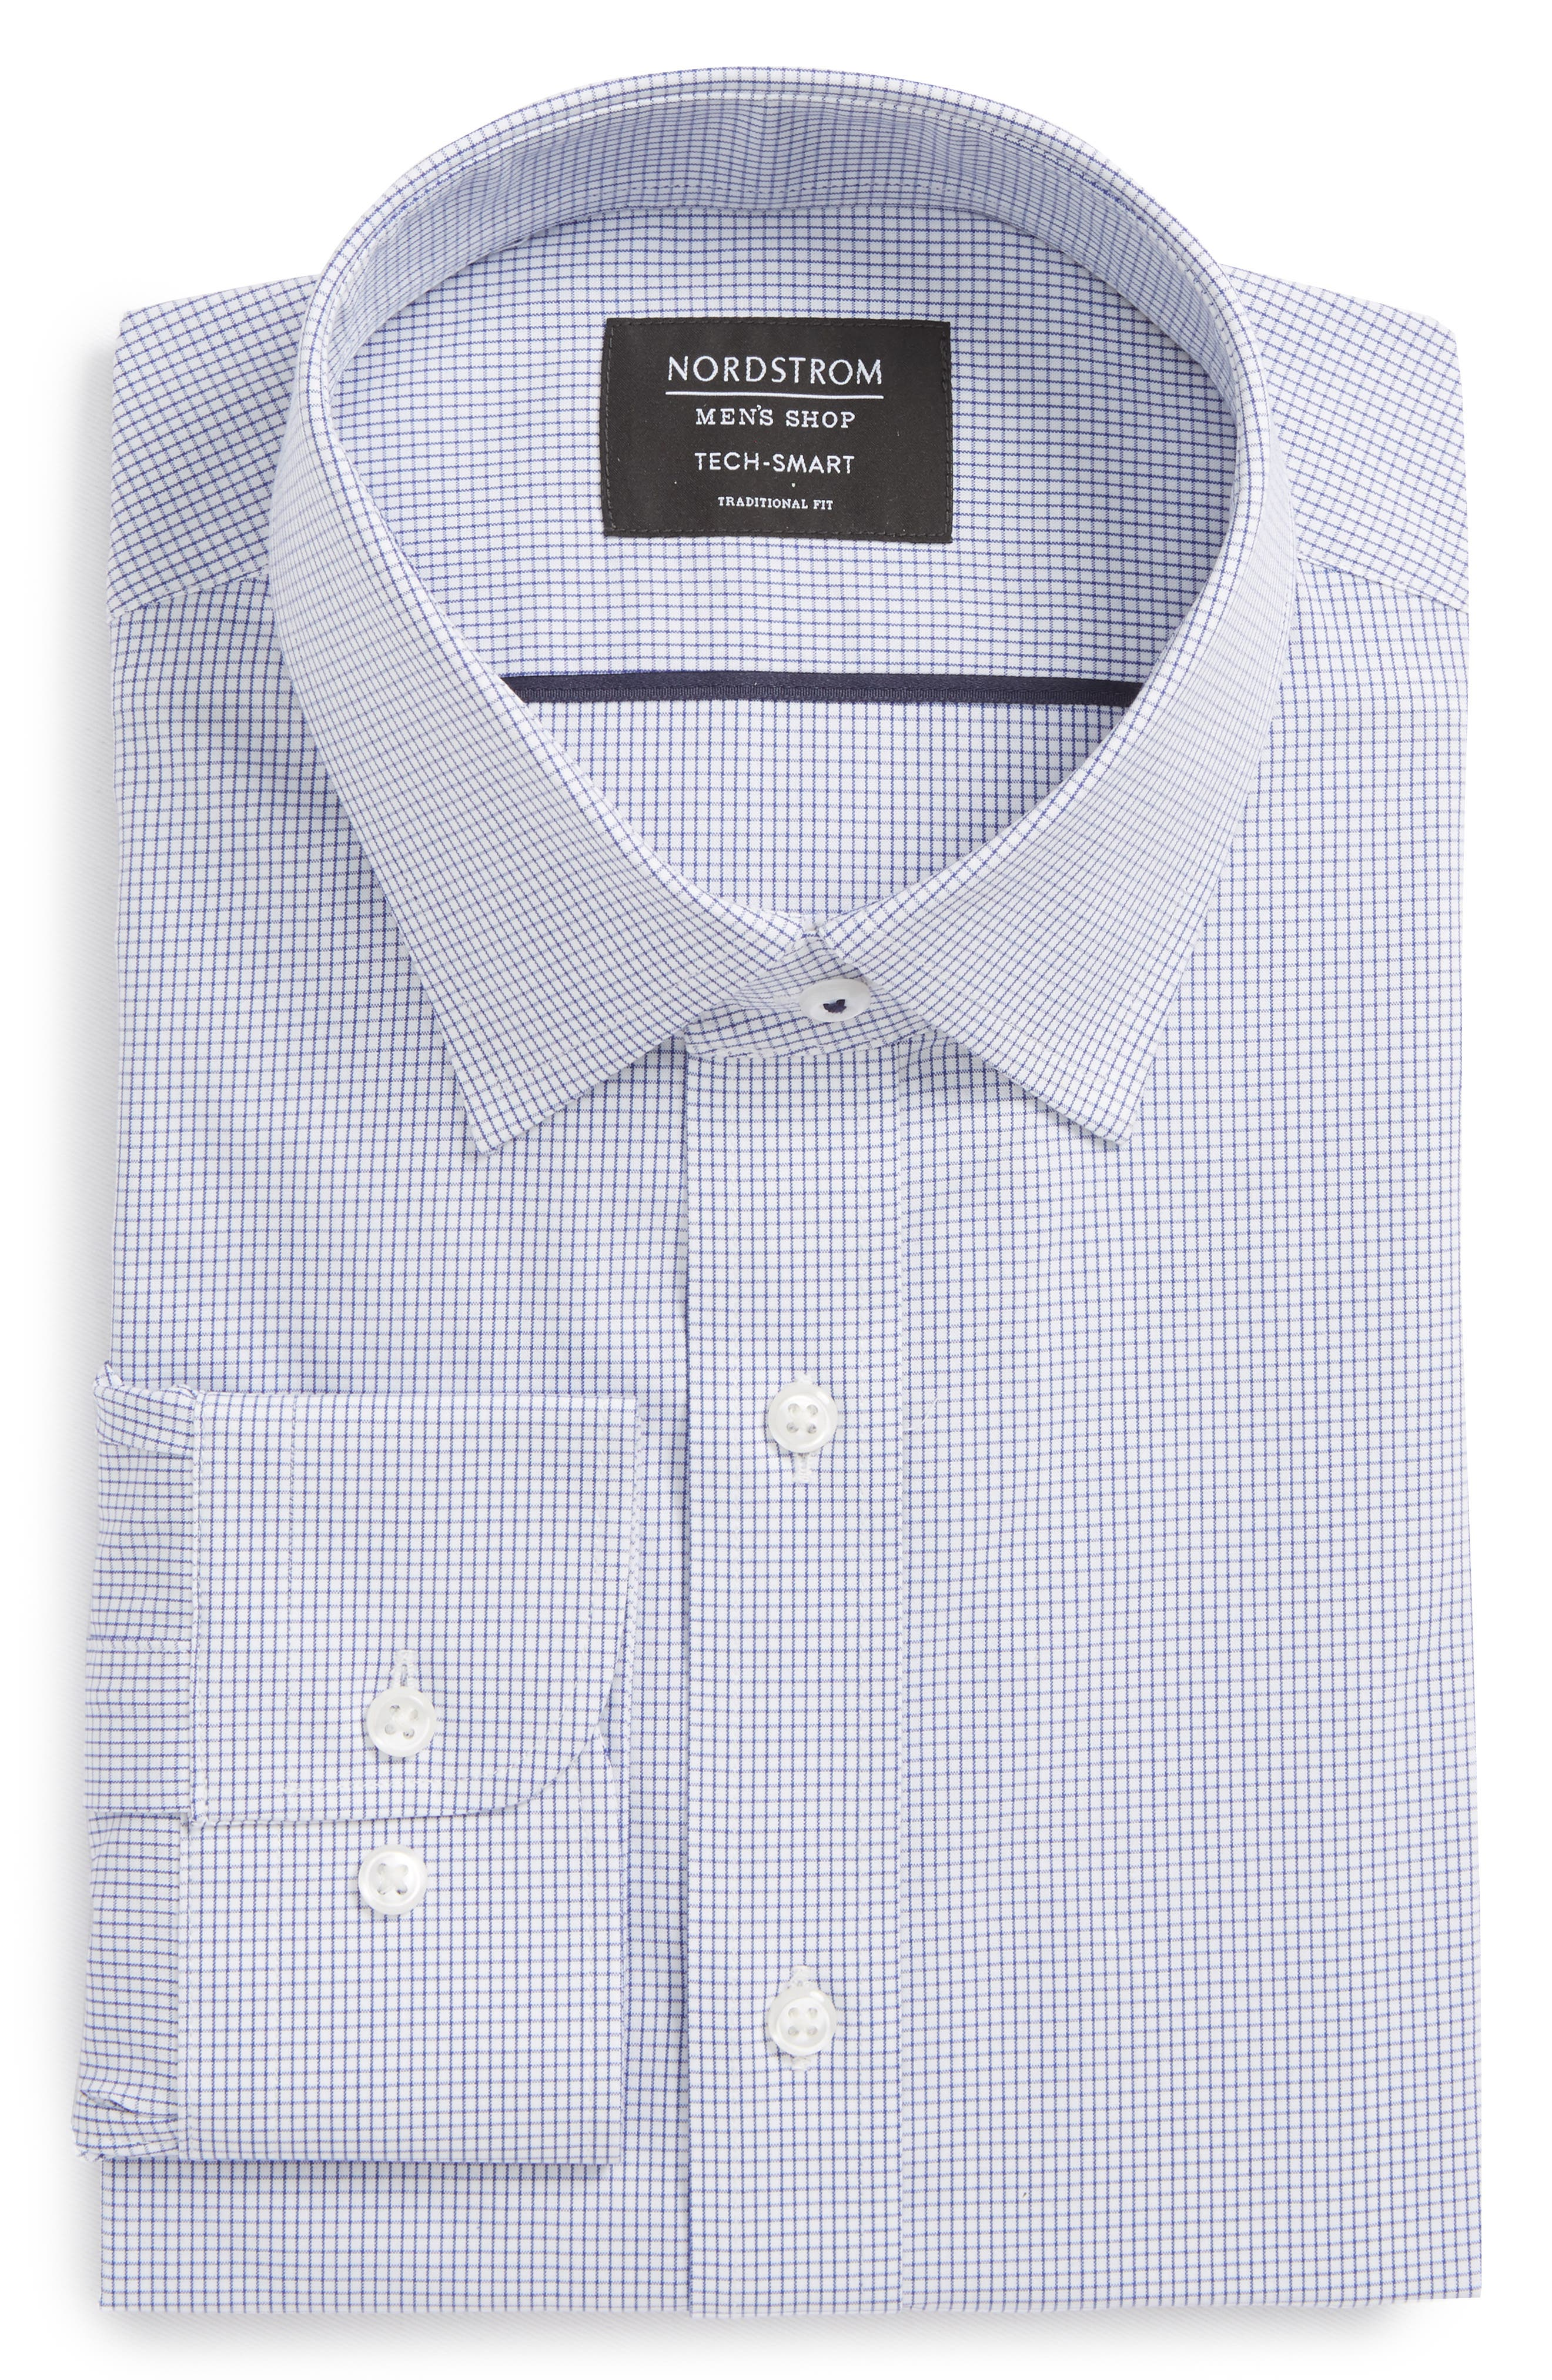 Tech-Smart Traditional Fit Stretch Tattersall Dress Shirt,                             Main thumbnail 1, color,                             420